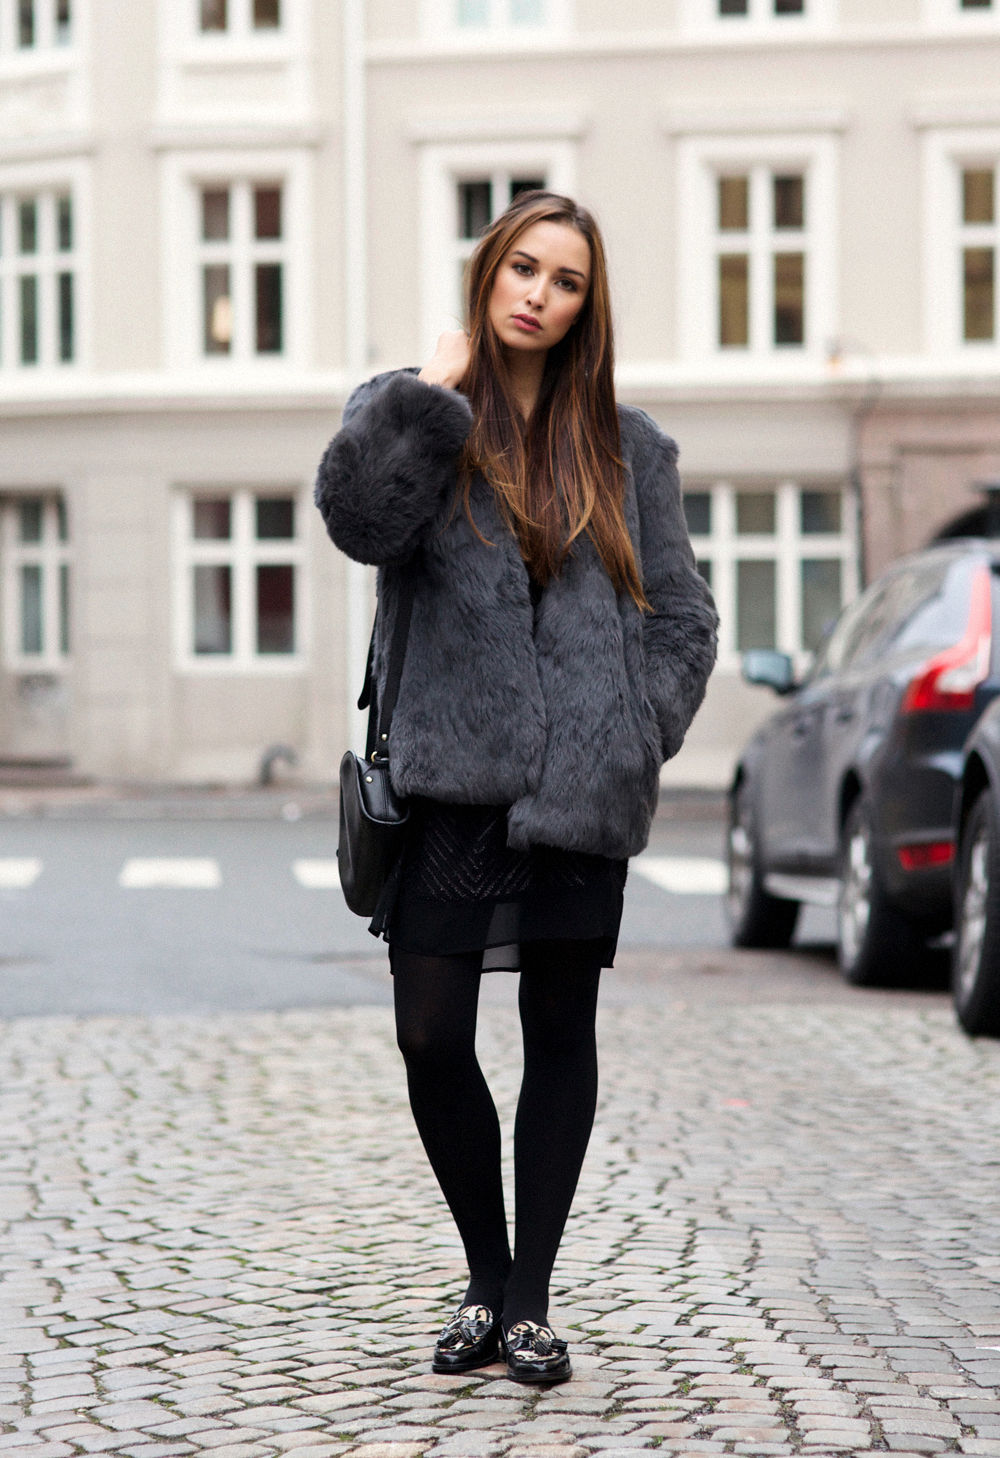 Fuzzy Black Sweater